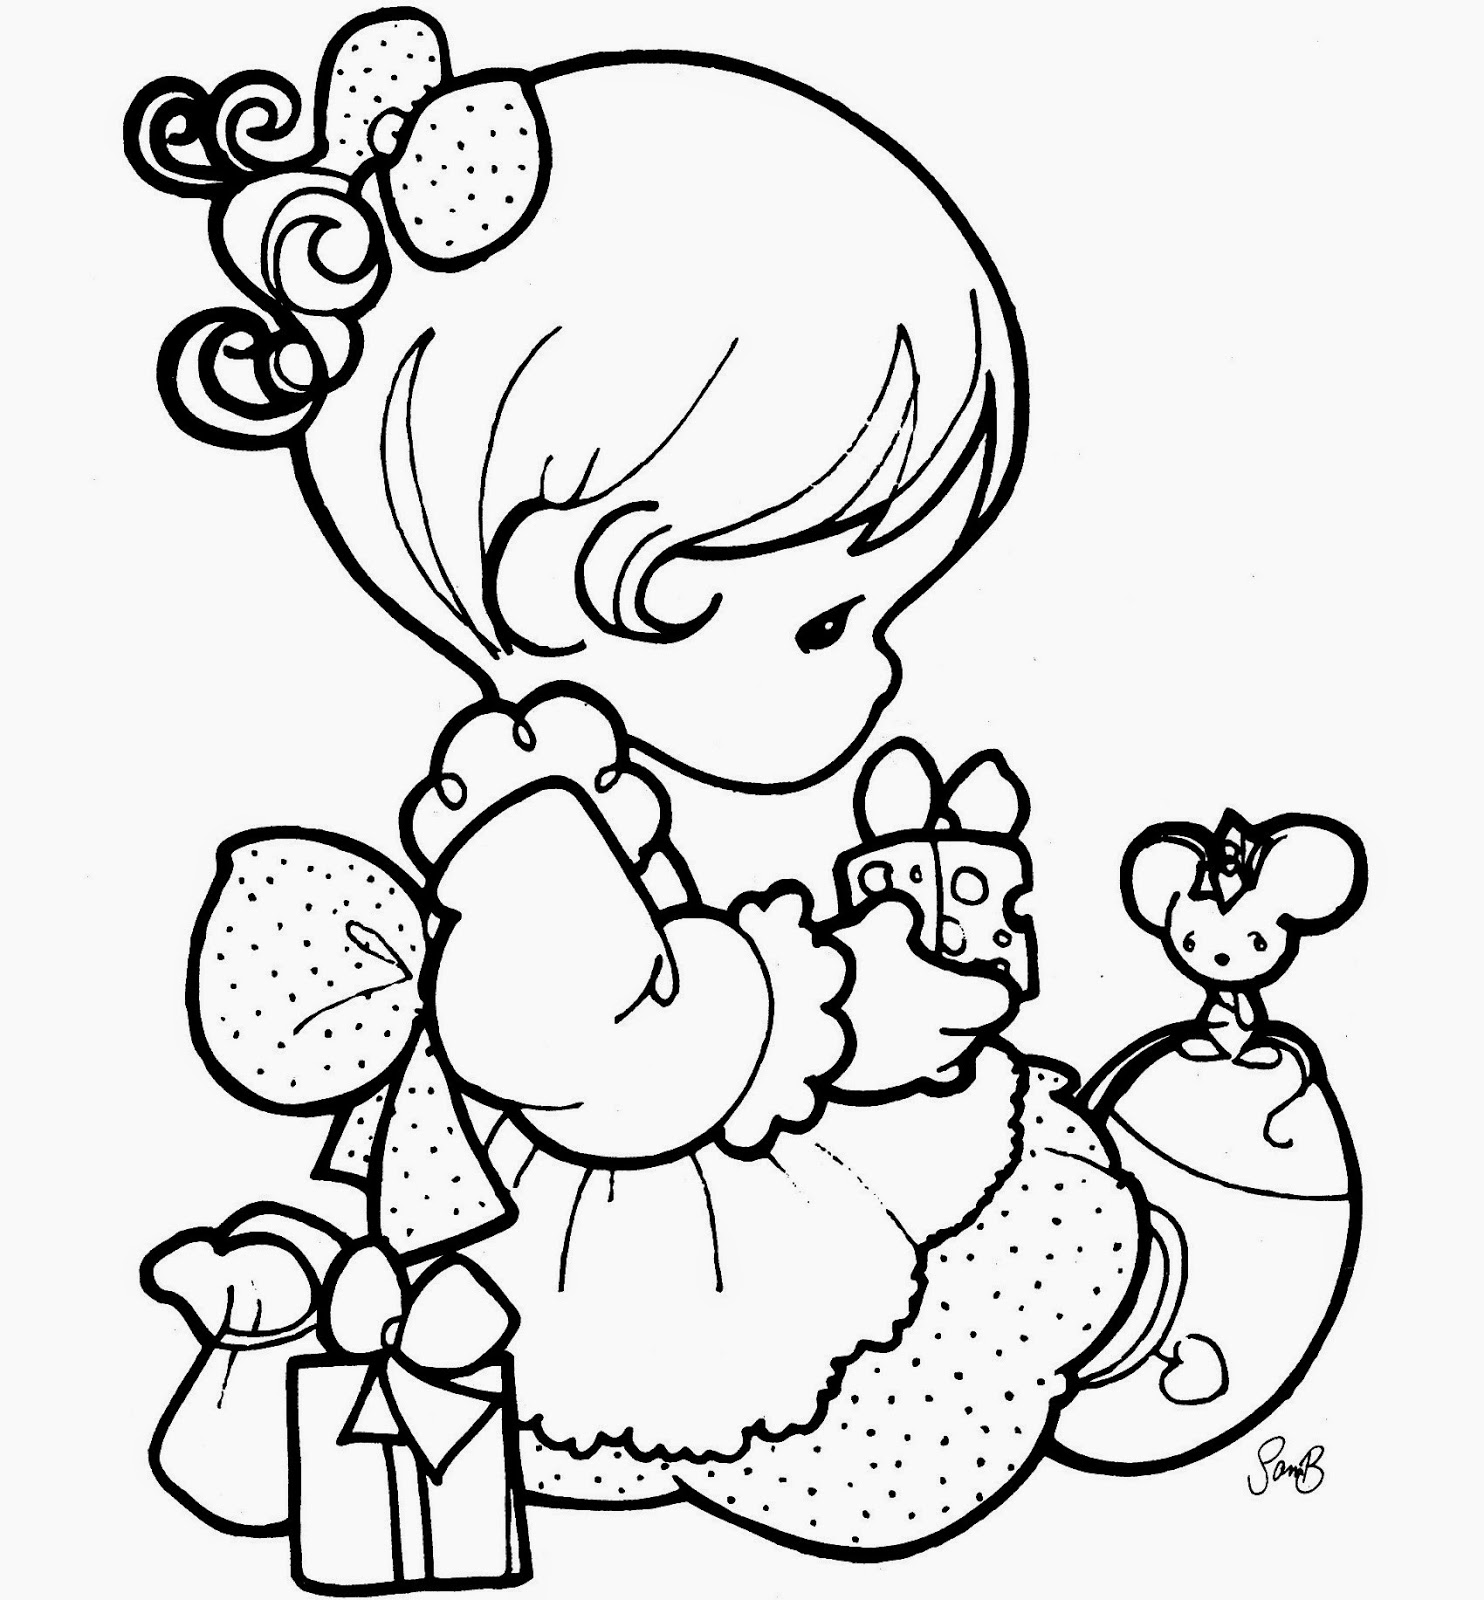 coloring books for girls coloring pages little girl desenhos para colorir books coloring for girls